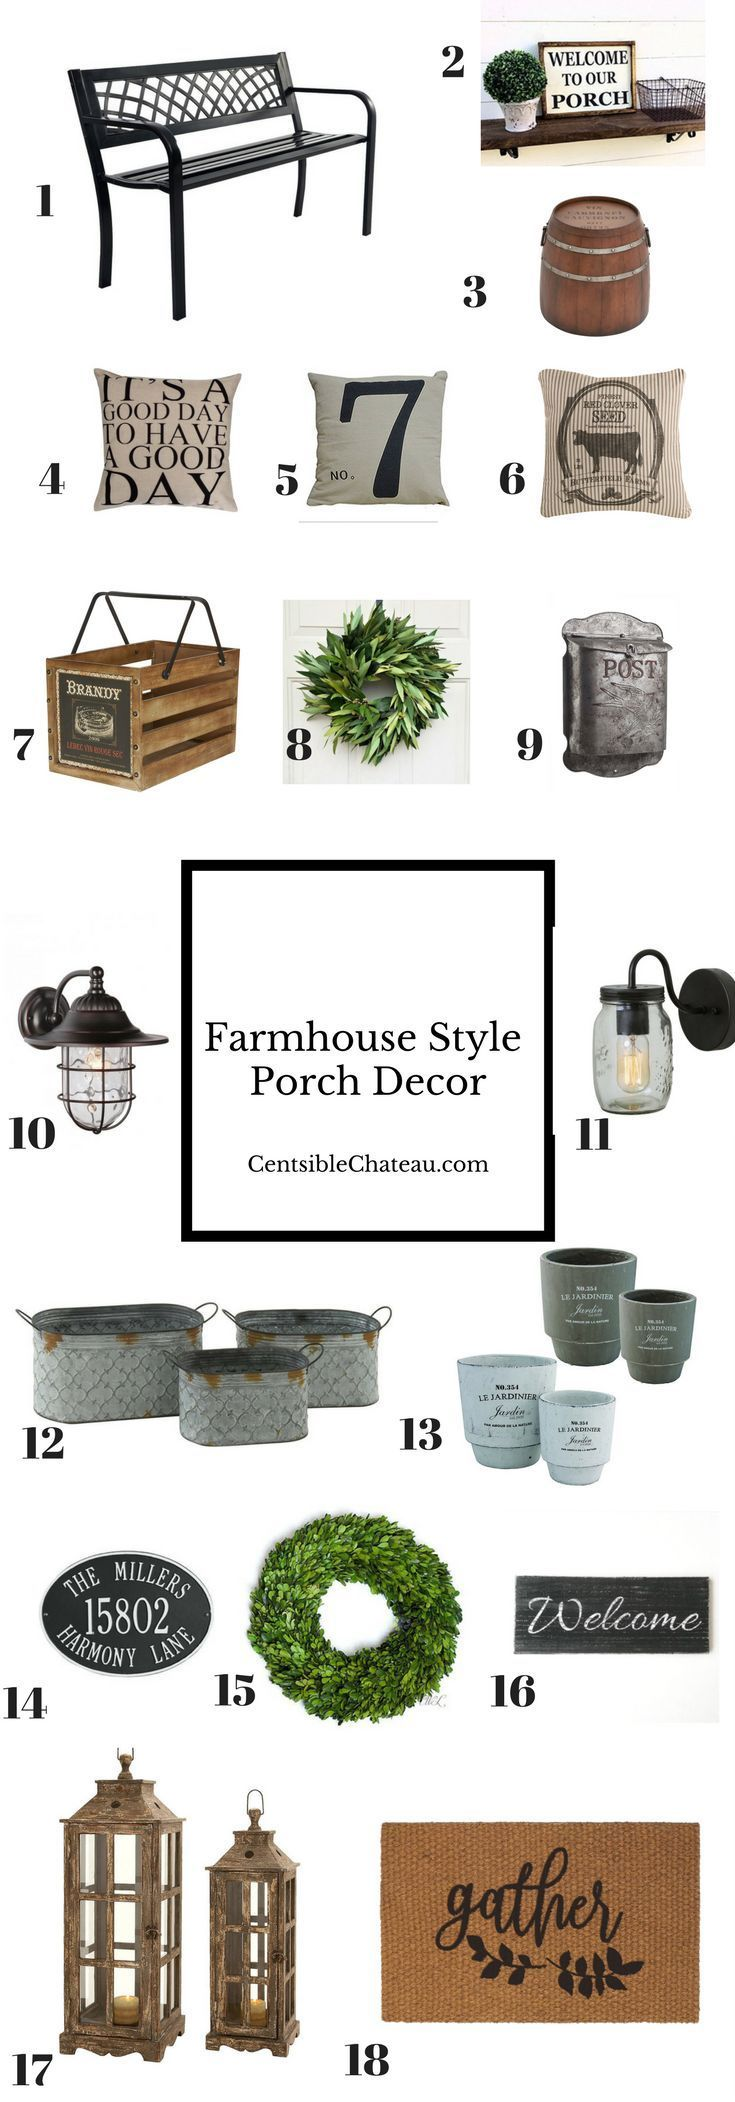 Farmhouse Style Porch Decor